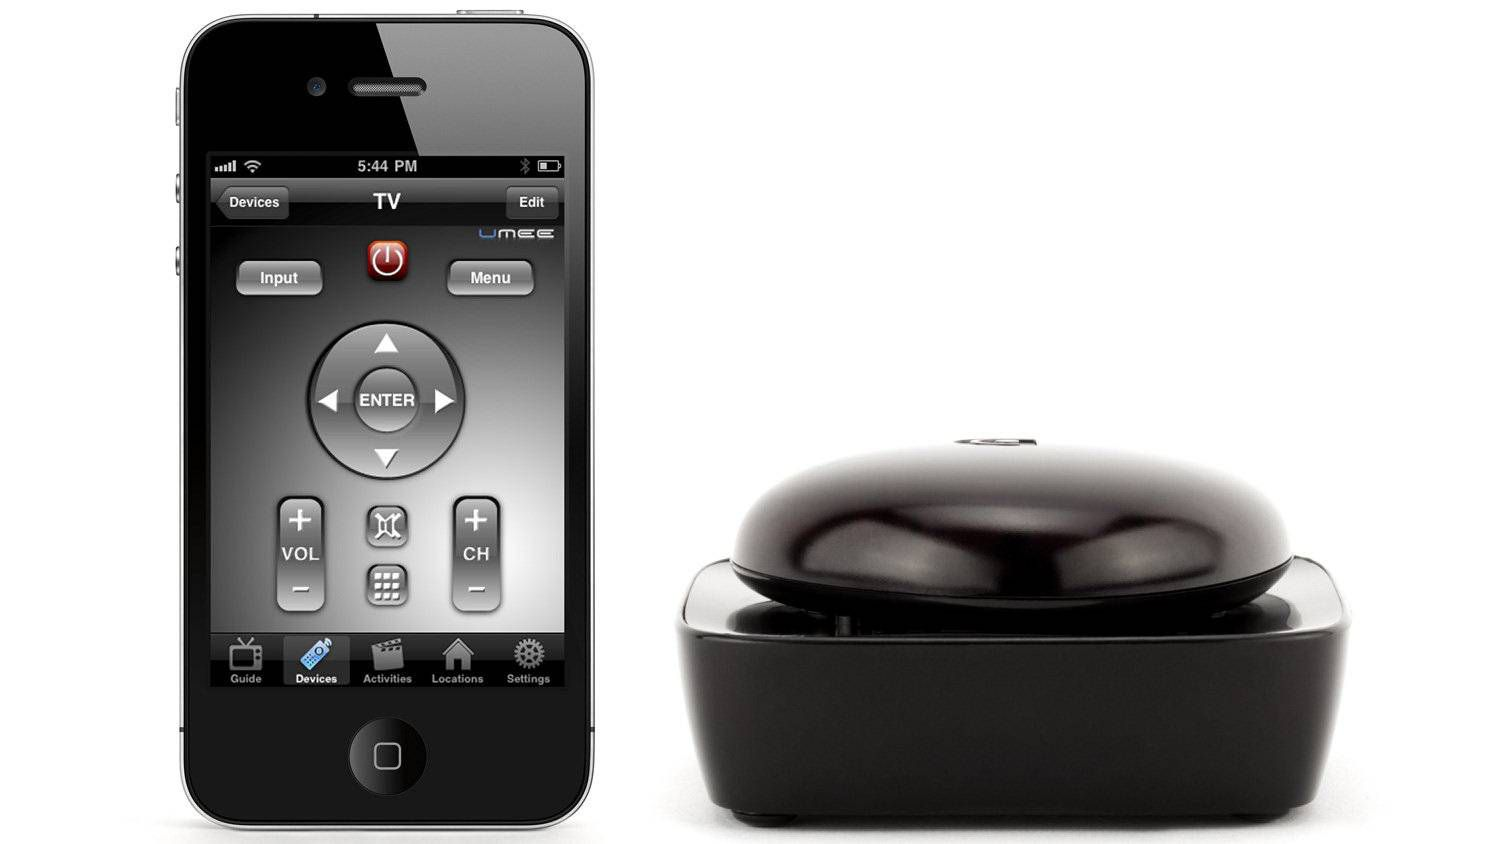 Griffin Beacon makes your smartphone a universal remote - The Globe and Mail